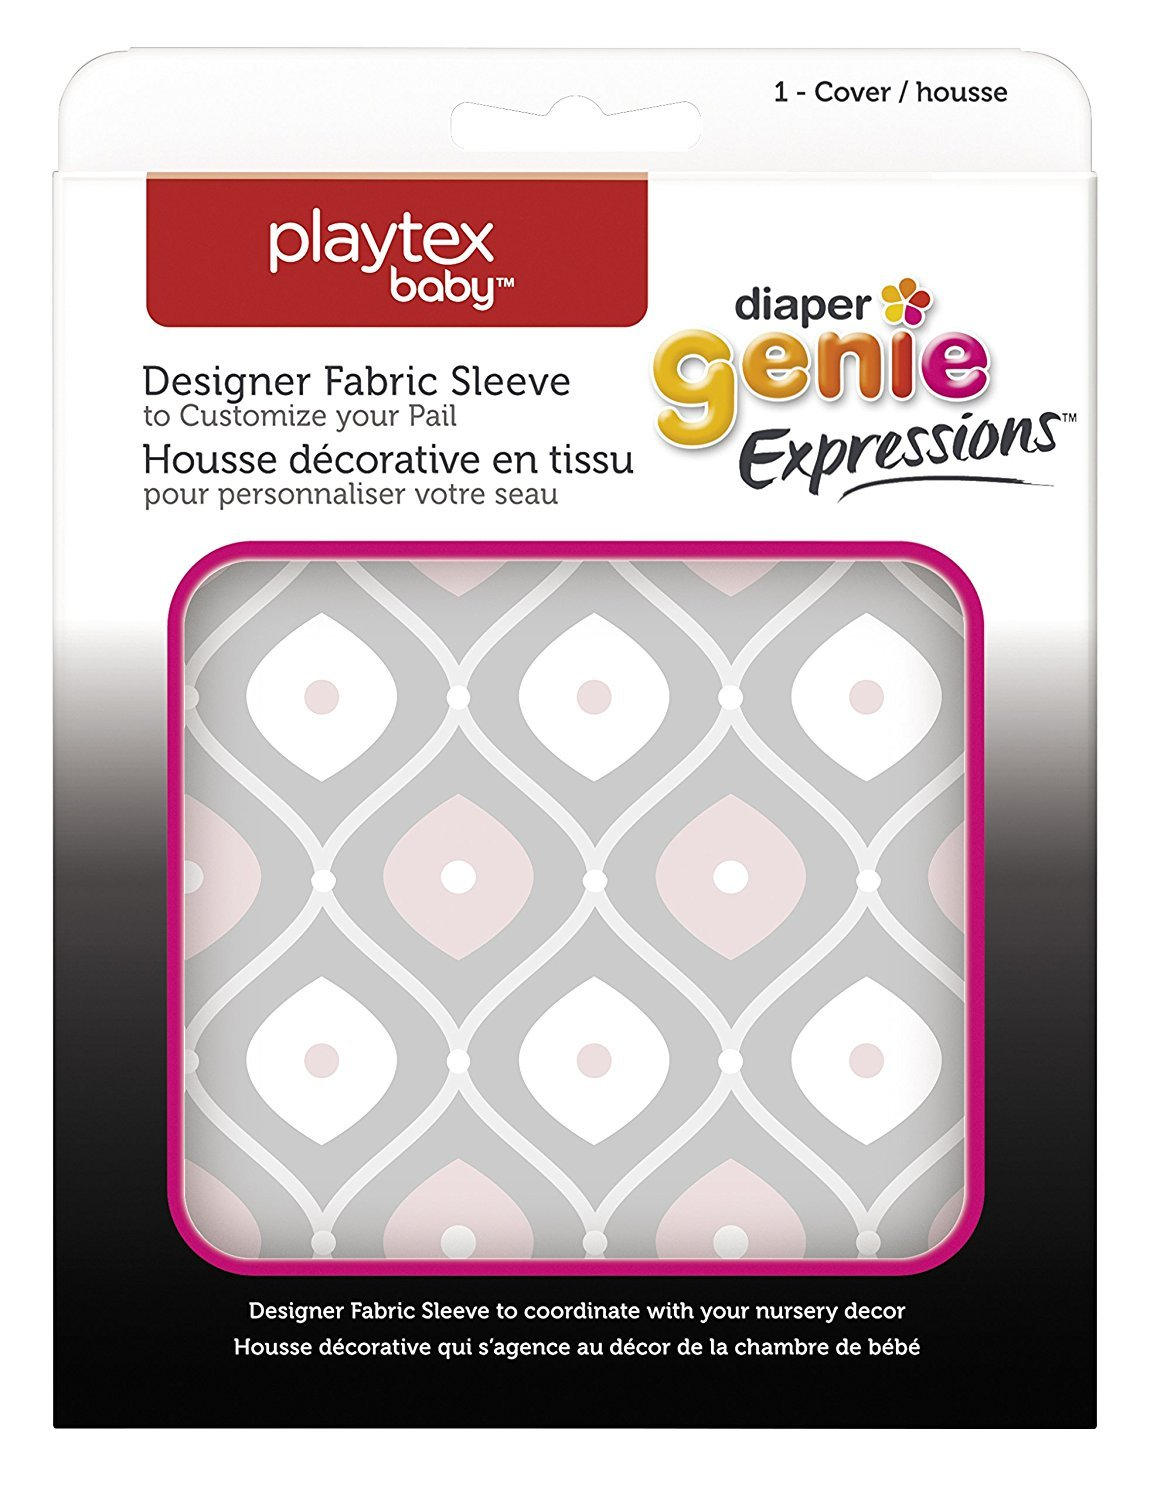 Playtex Diaper Genie Expressions Diaper Pail Fabric Sleeve, Blue Tile Edgewell Personal Care 10078300019463